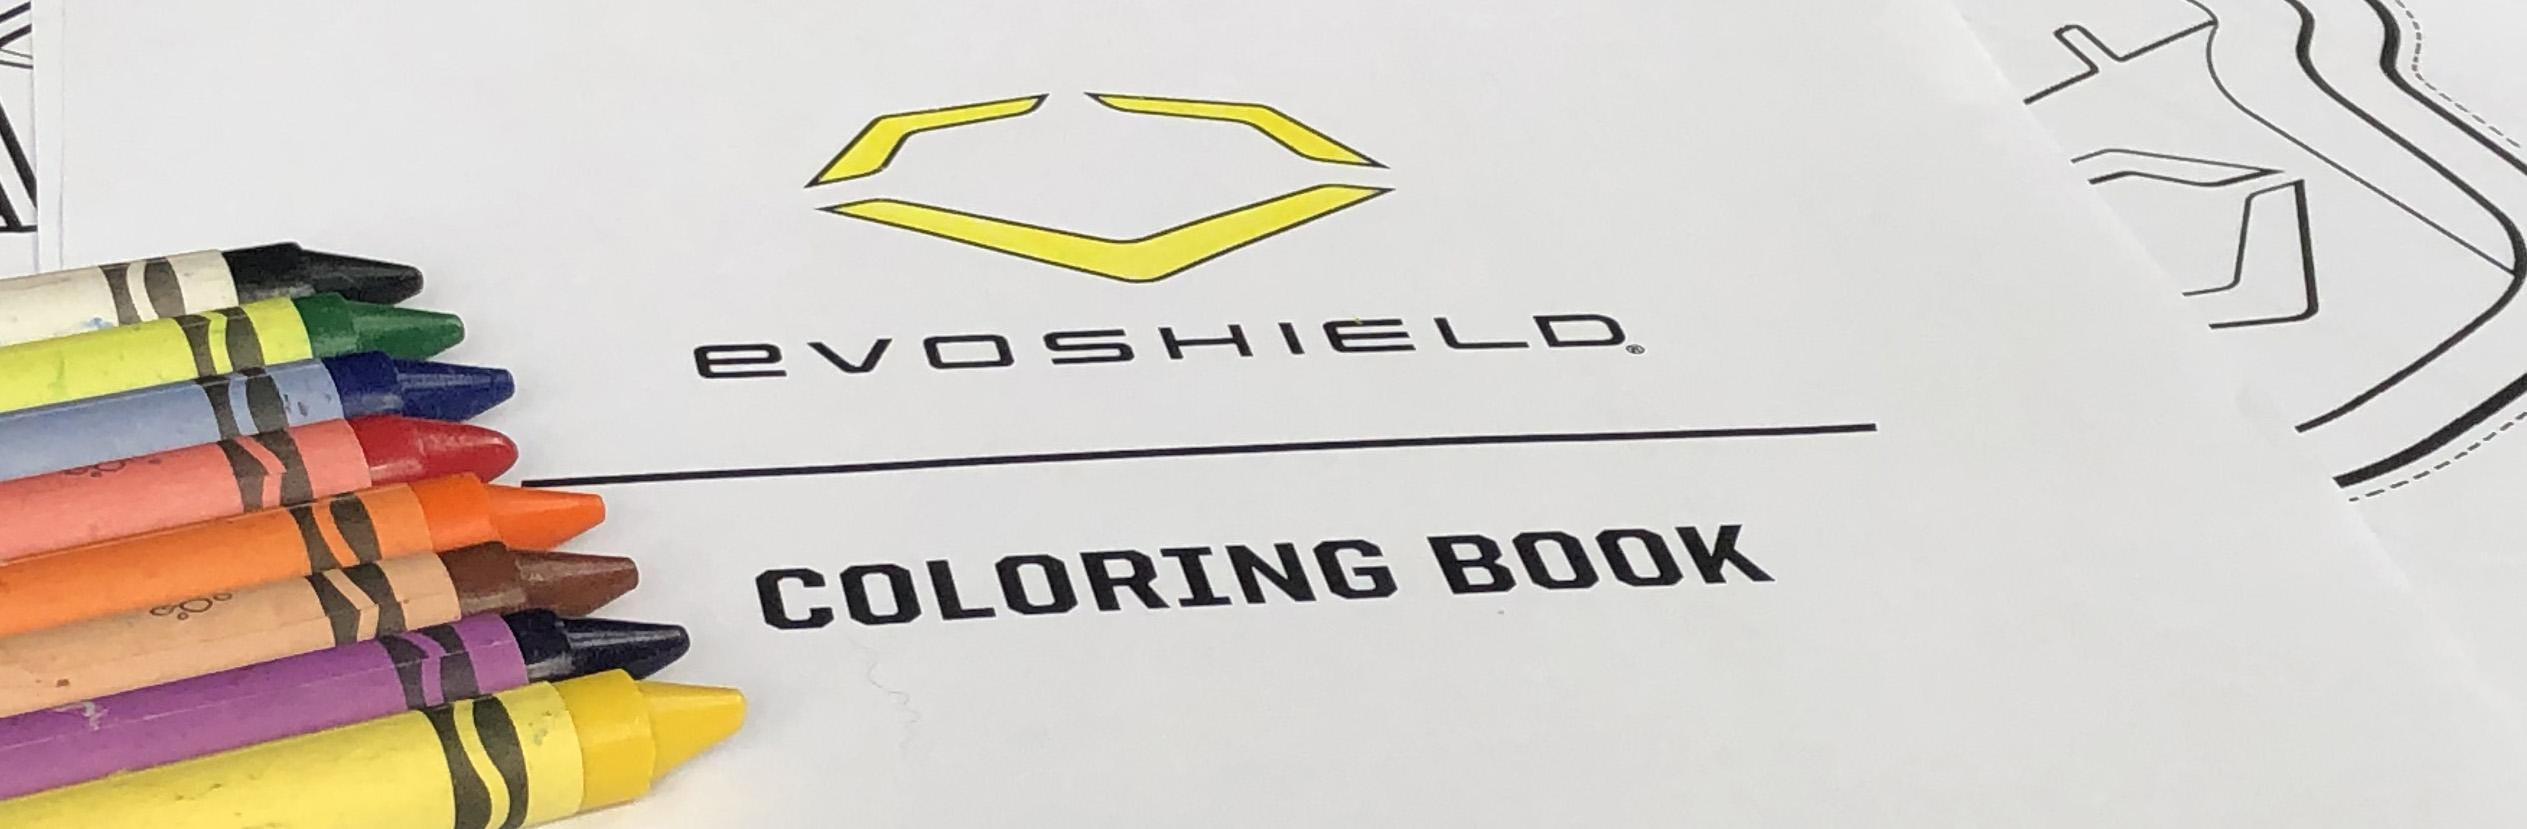 EvoShield Coloring Book